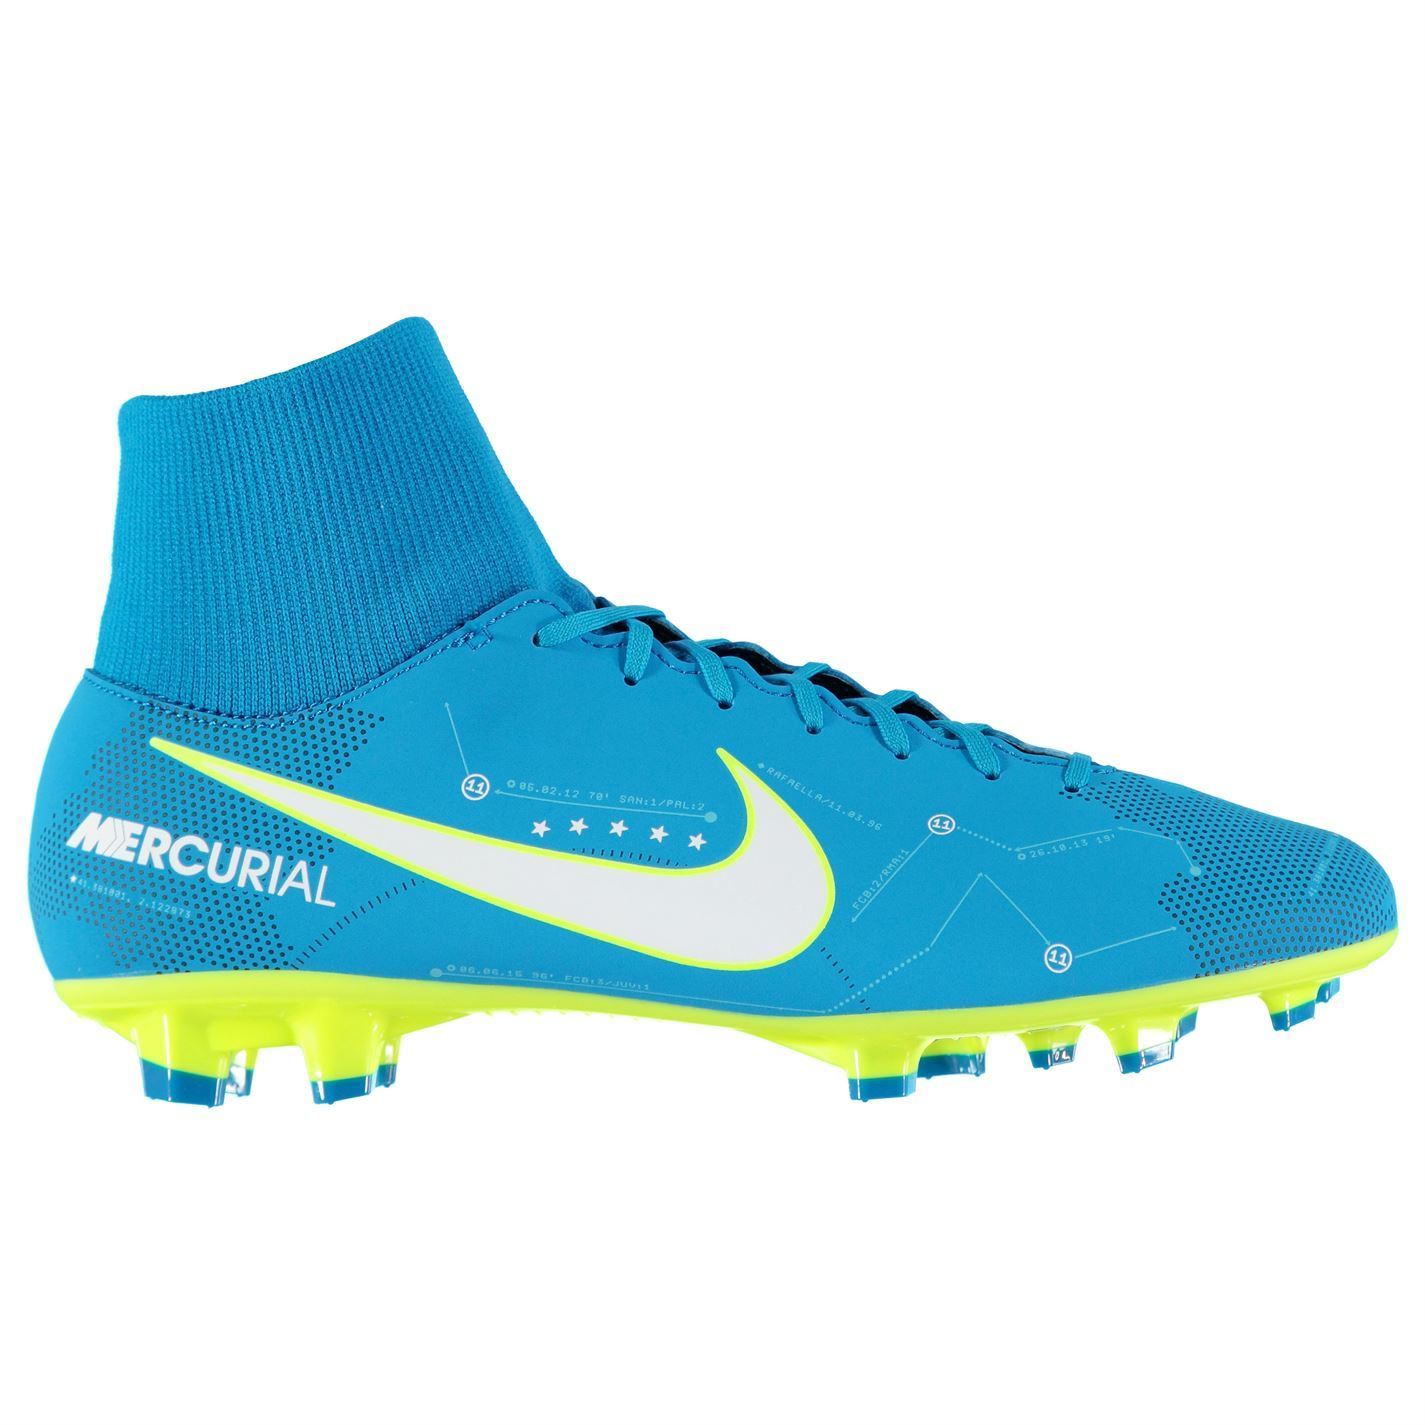 3d891ad8b62 ... Nike Mercurial Victory Neymar Jr DF FG Football Boots Mens Blue Soccer  Cleats ...